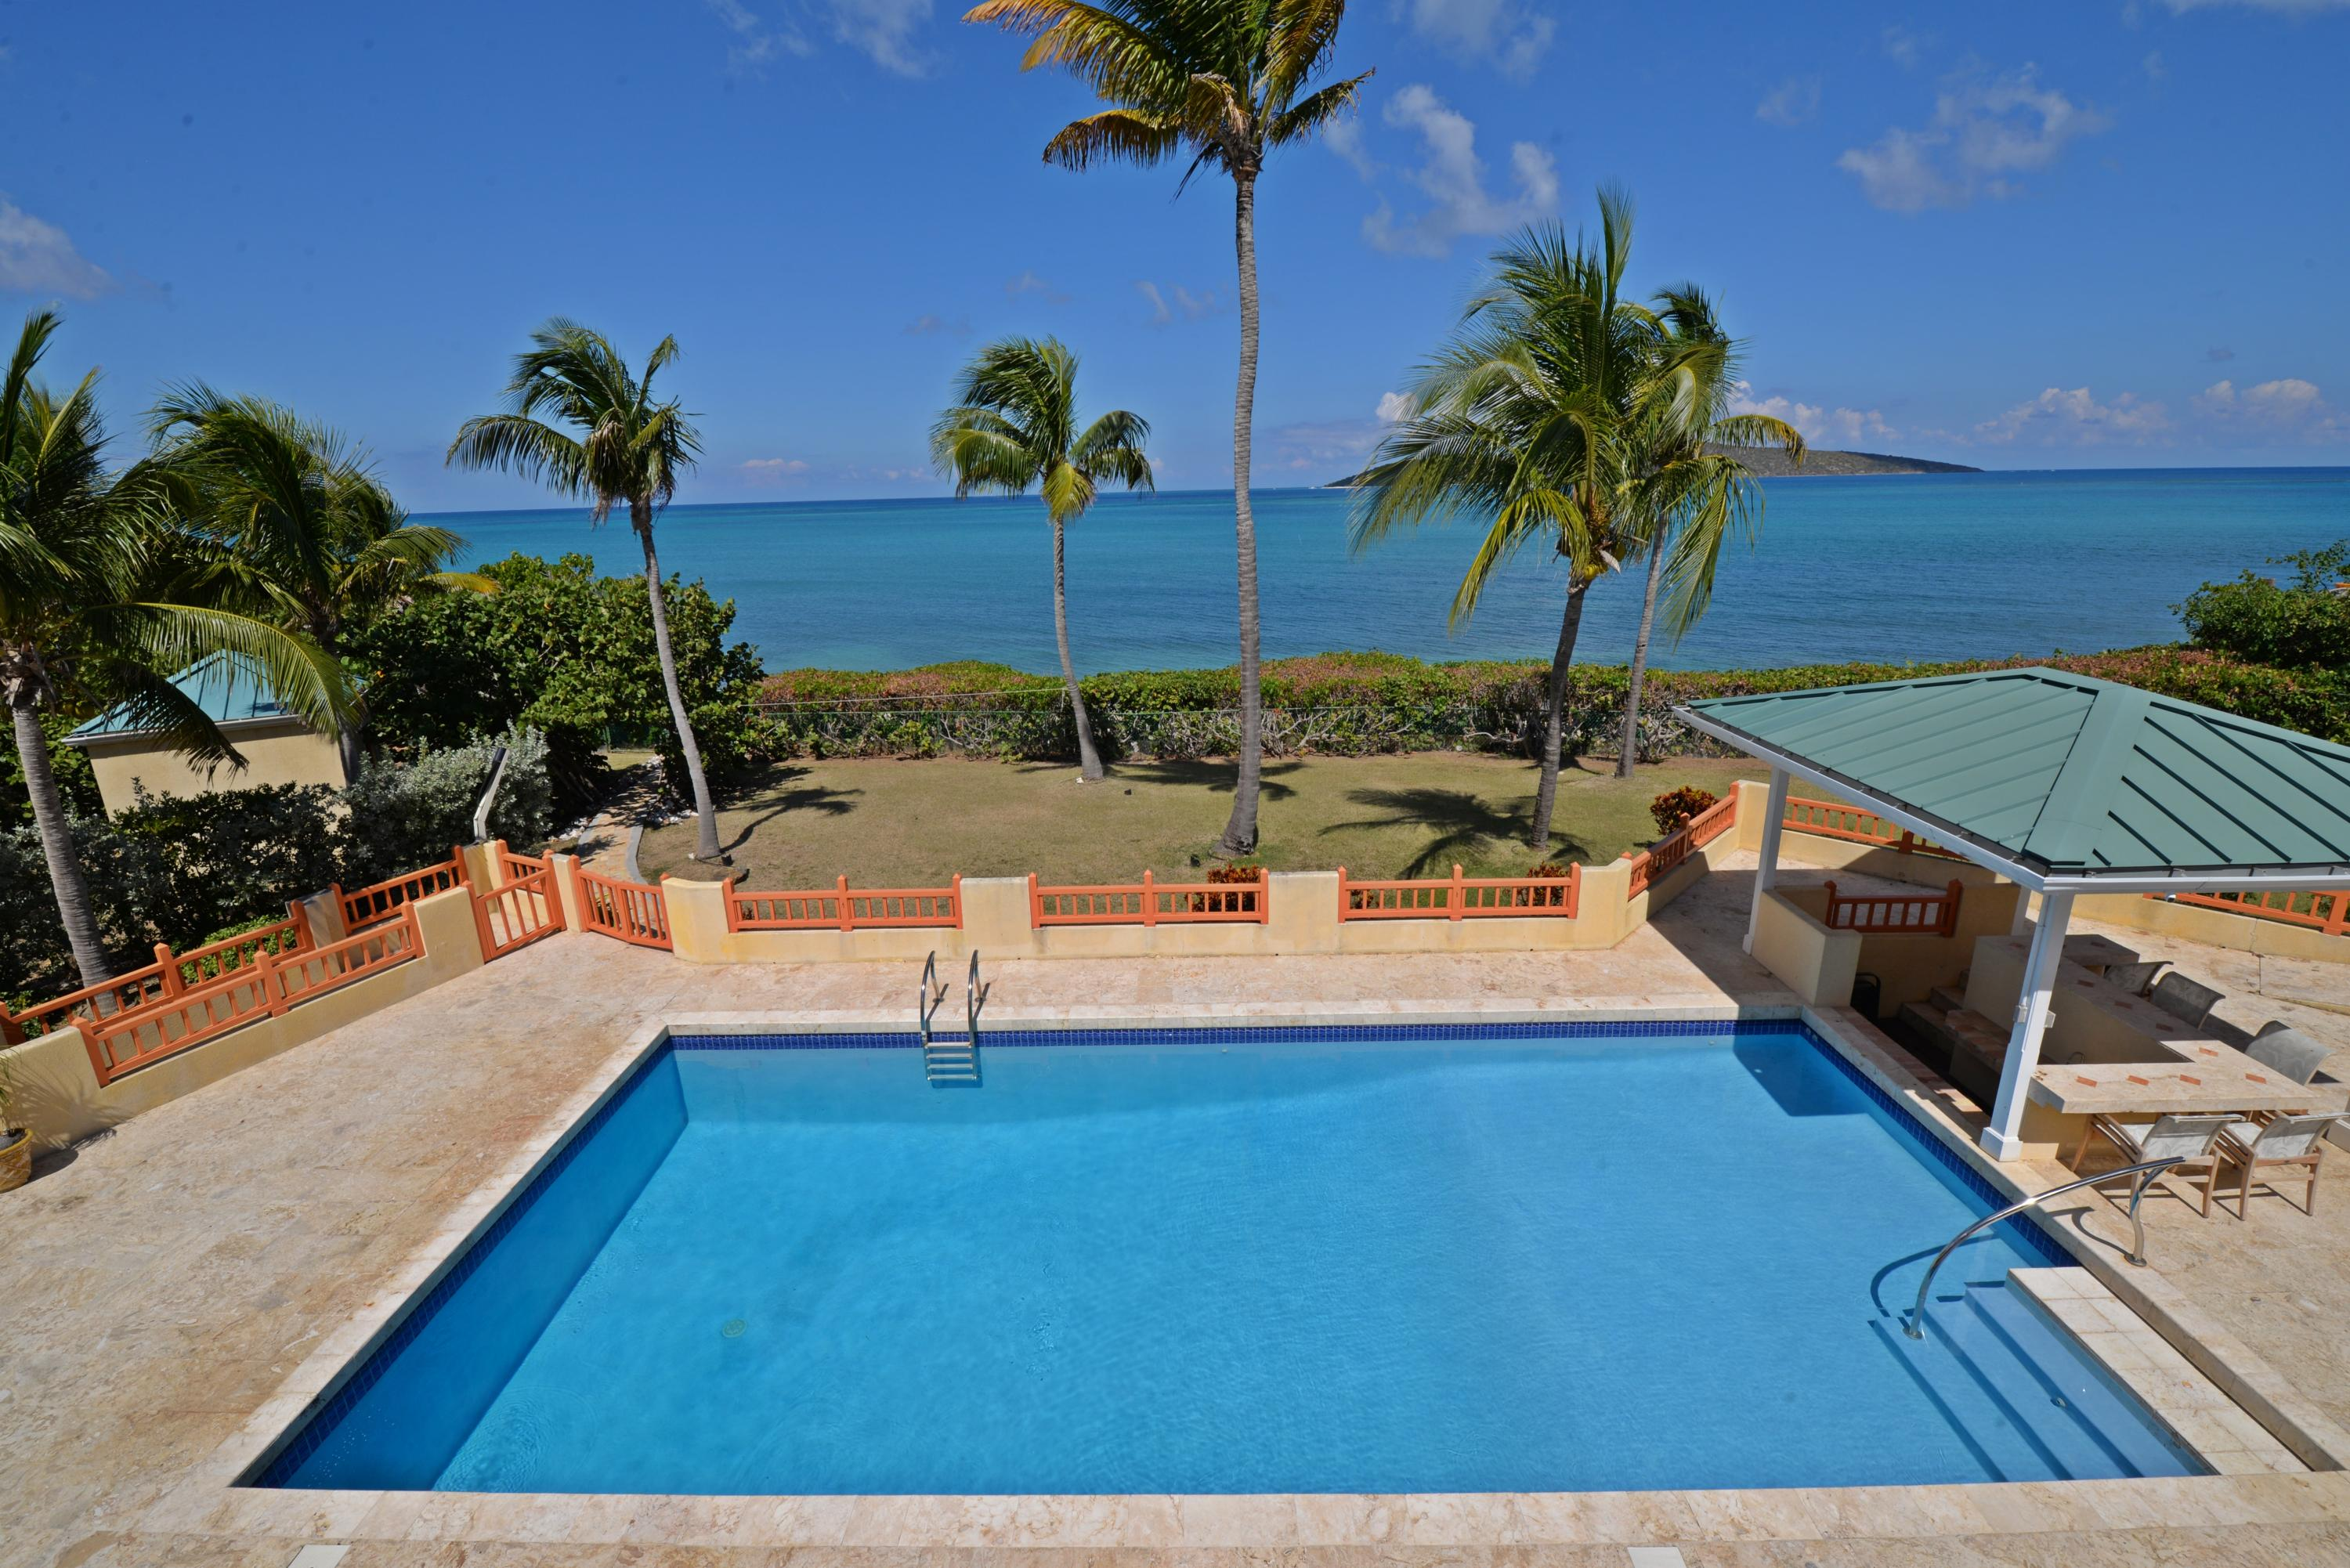 Sea view, pool and pool side bar from se